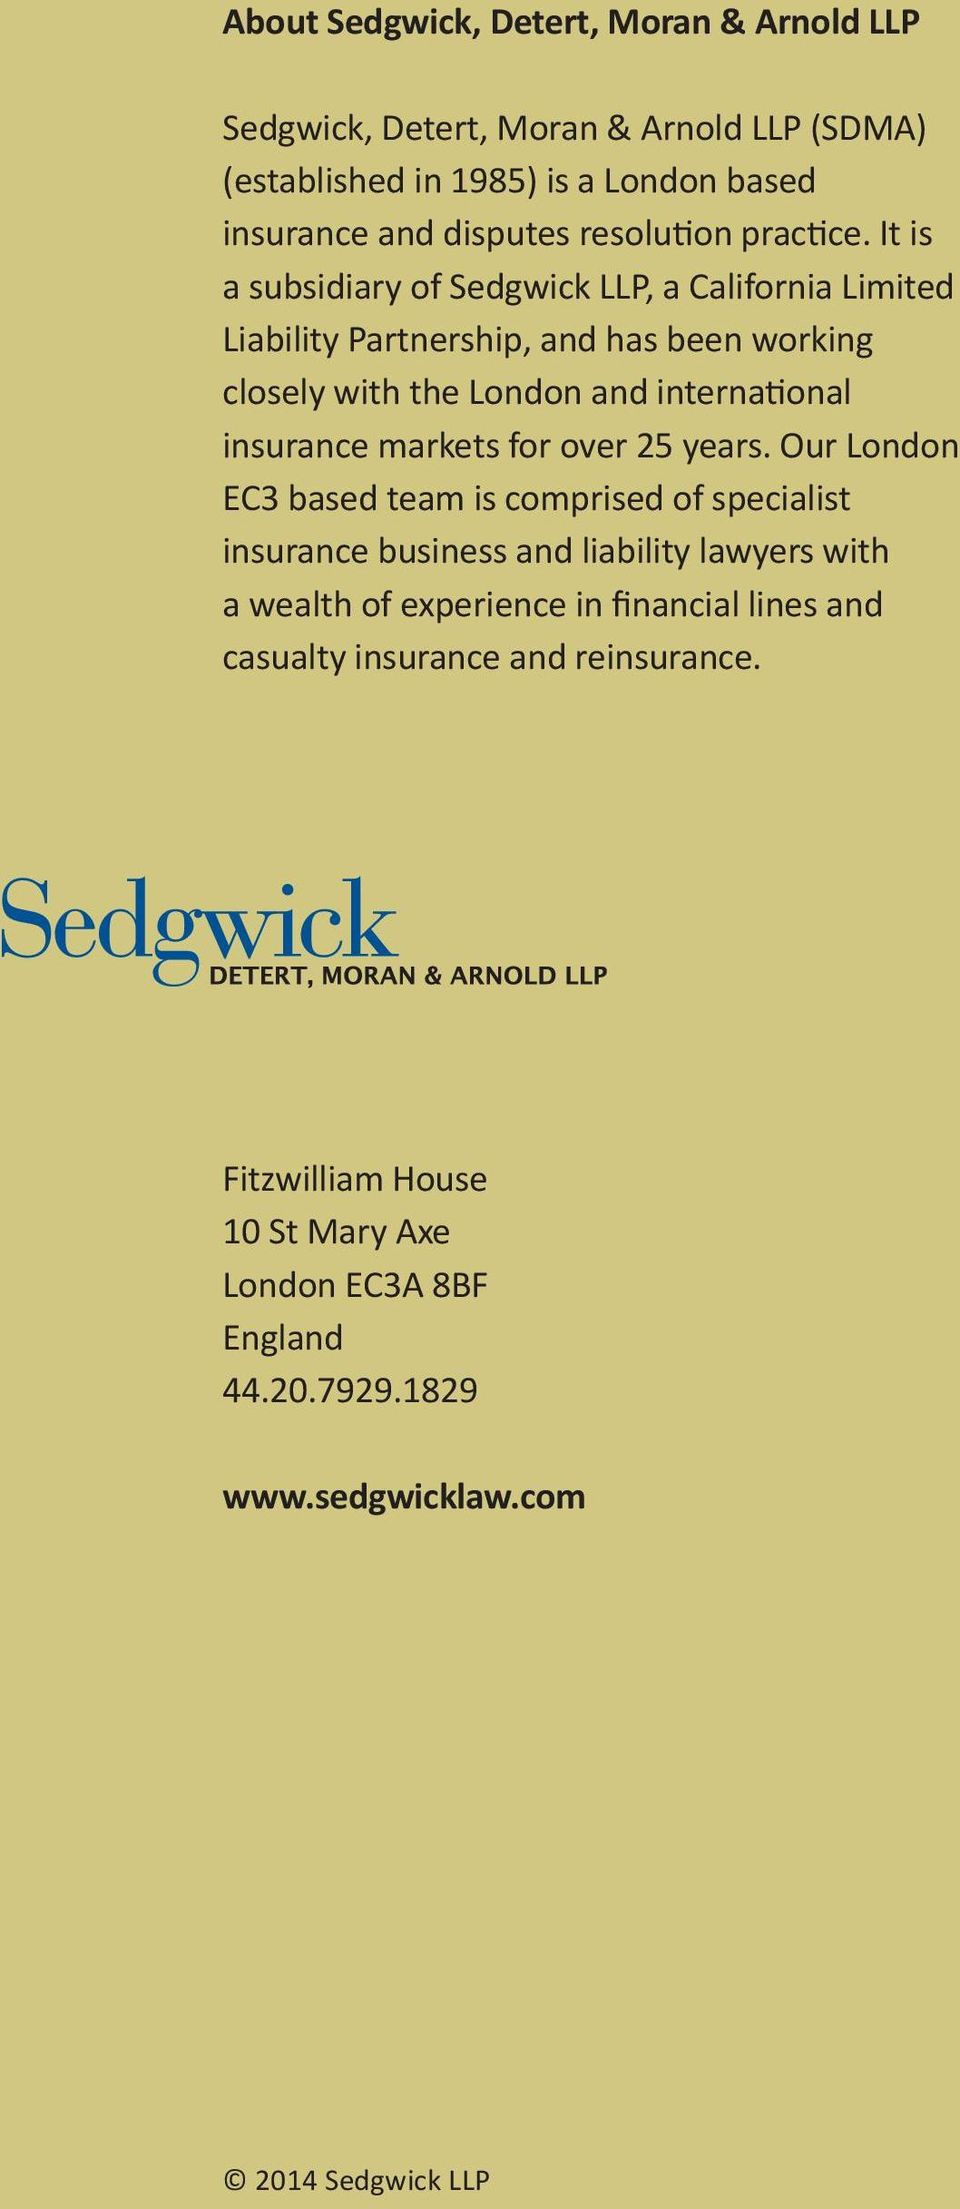 It is a subsidiary of Sedgwick LLP, a California Limited Liability Partnership, and has been working closely with the London and international insurance markets